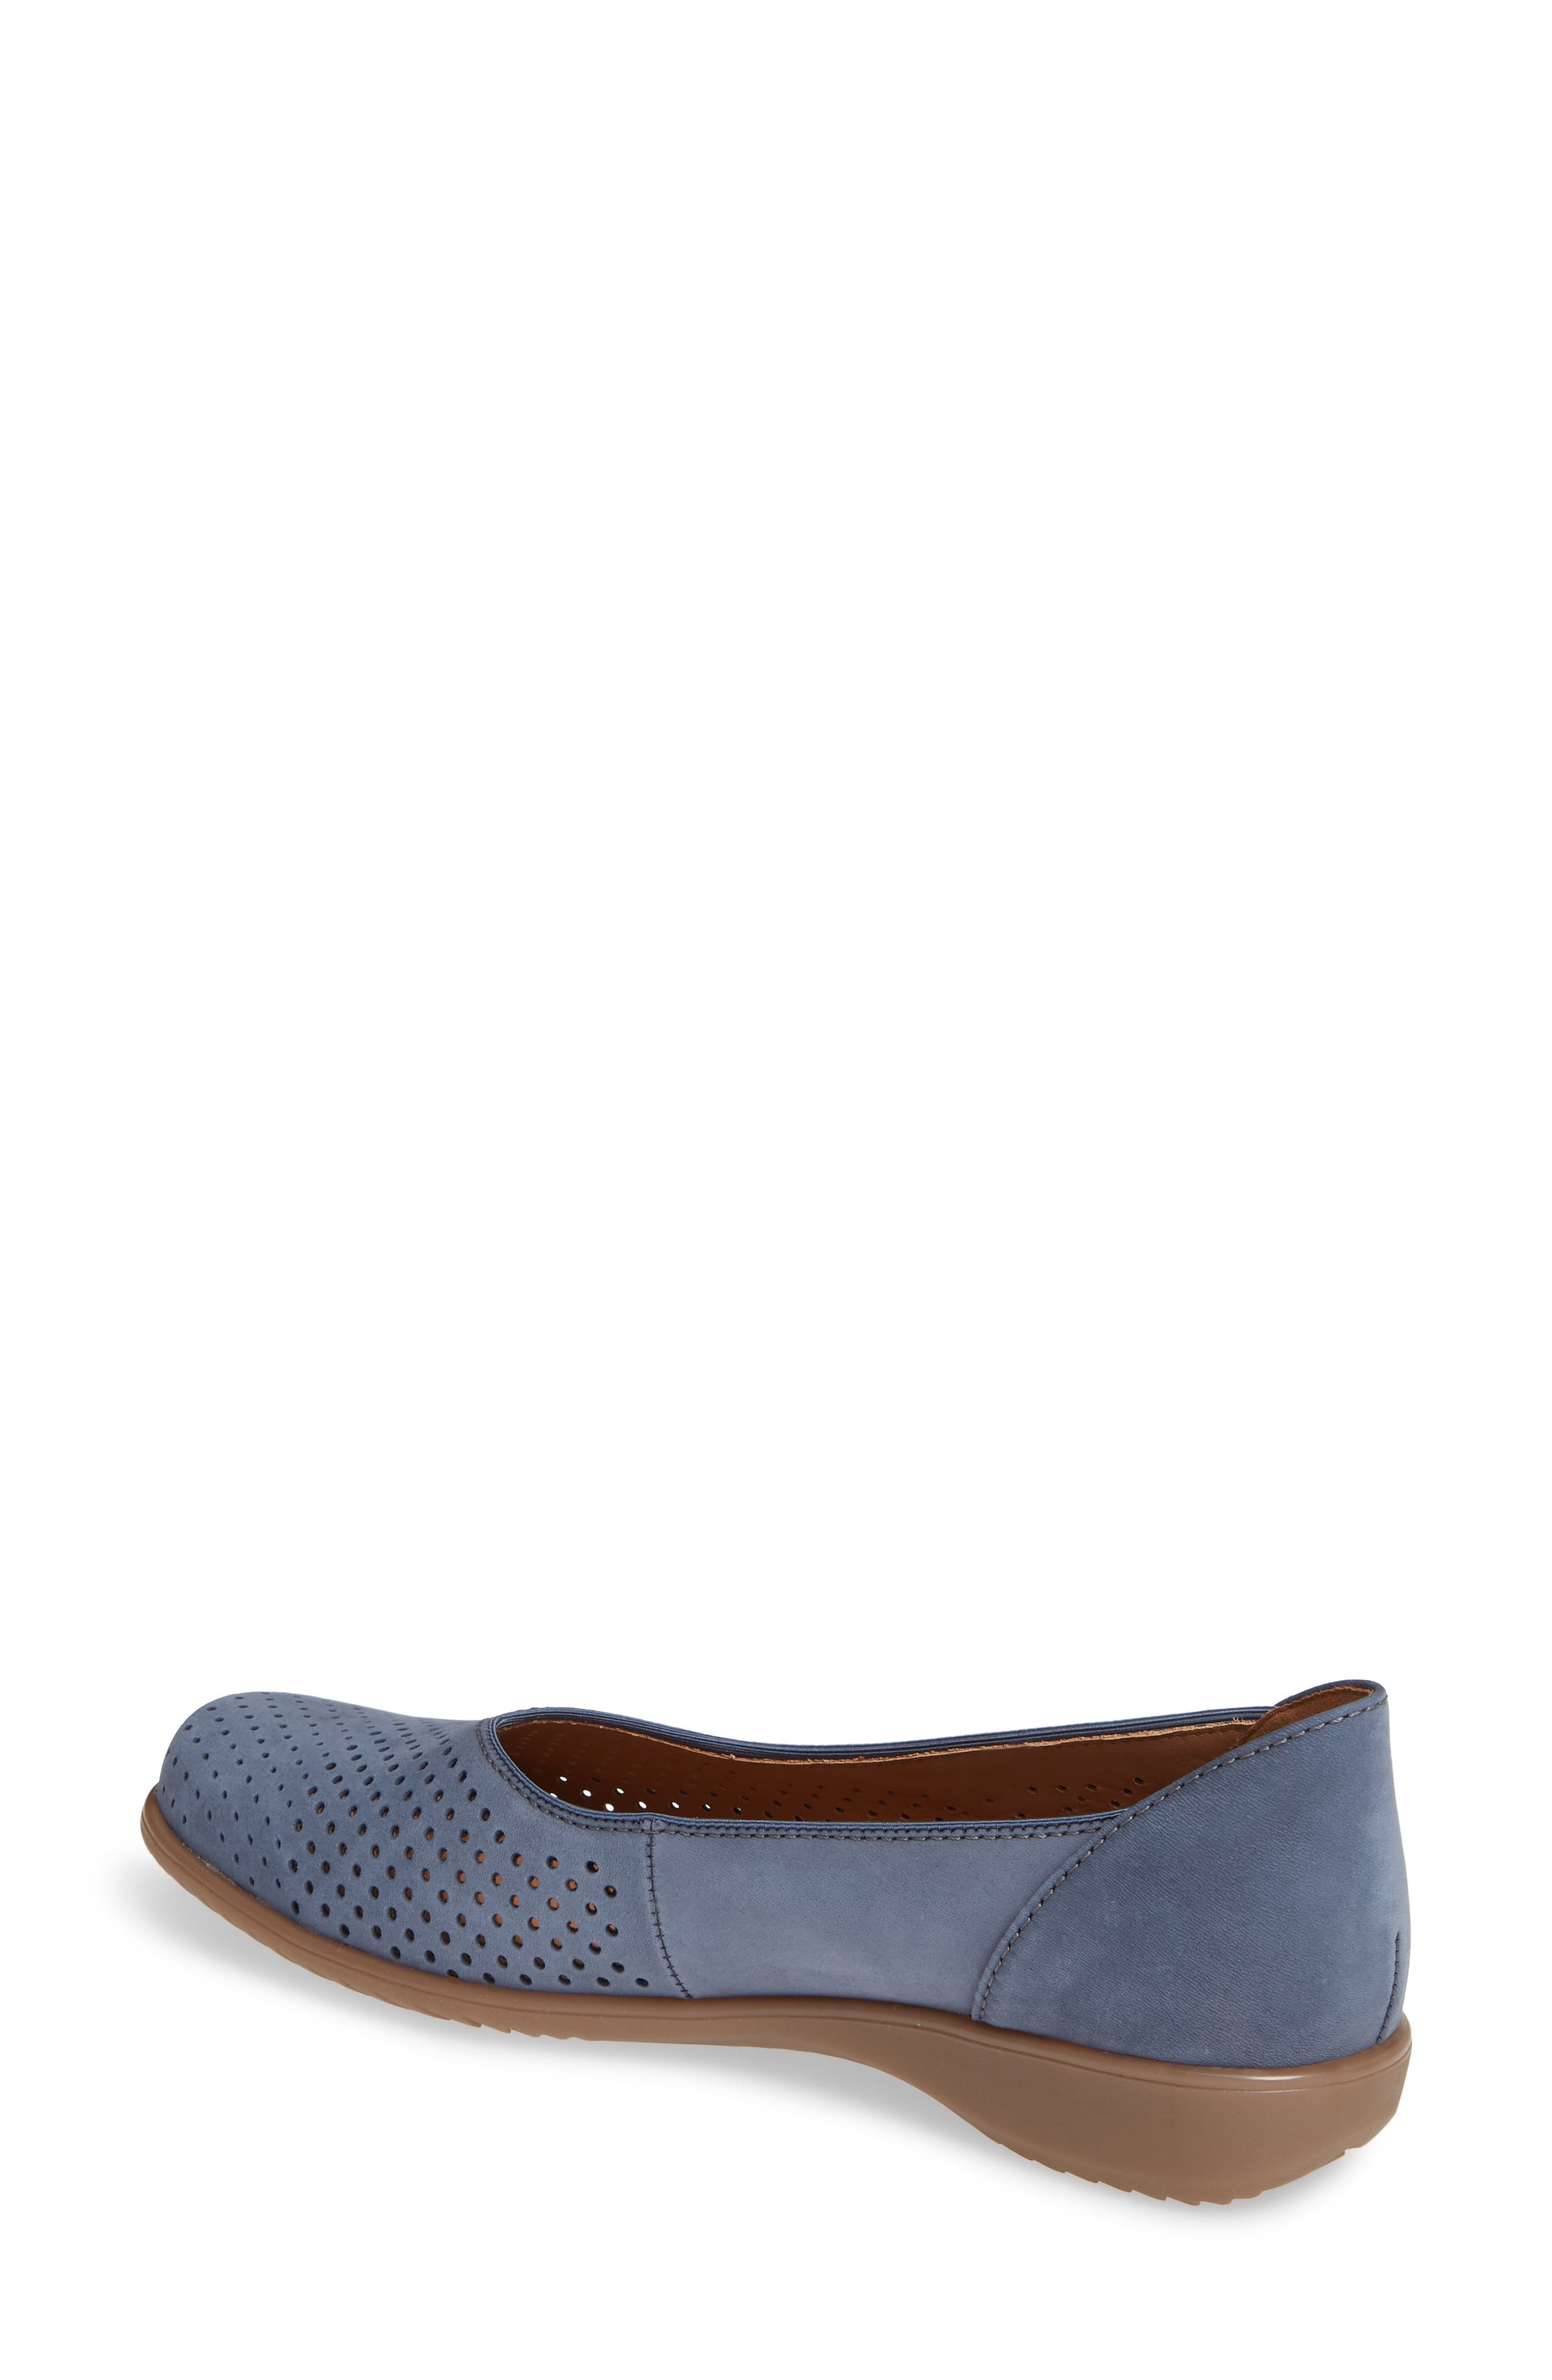 ARA,                             Avril Perforated Flat,                             Alternate thumbnail 2, color,                             JEANS NUBUCK LEATHER